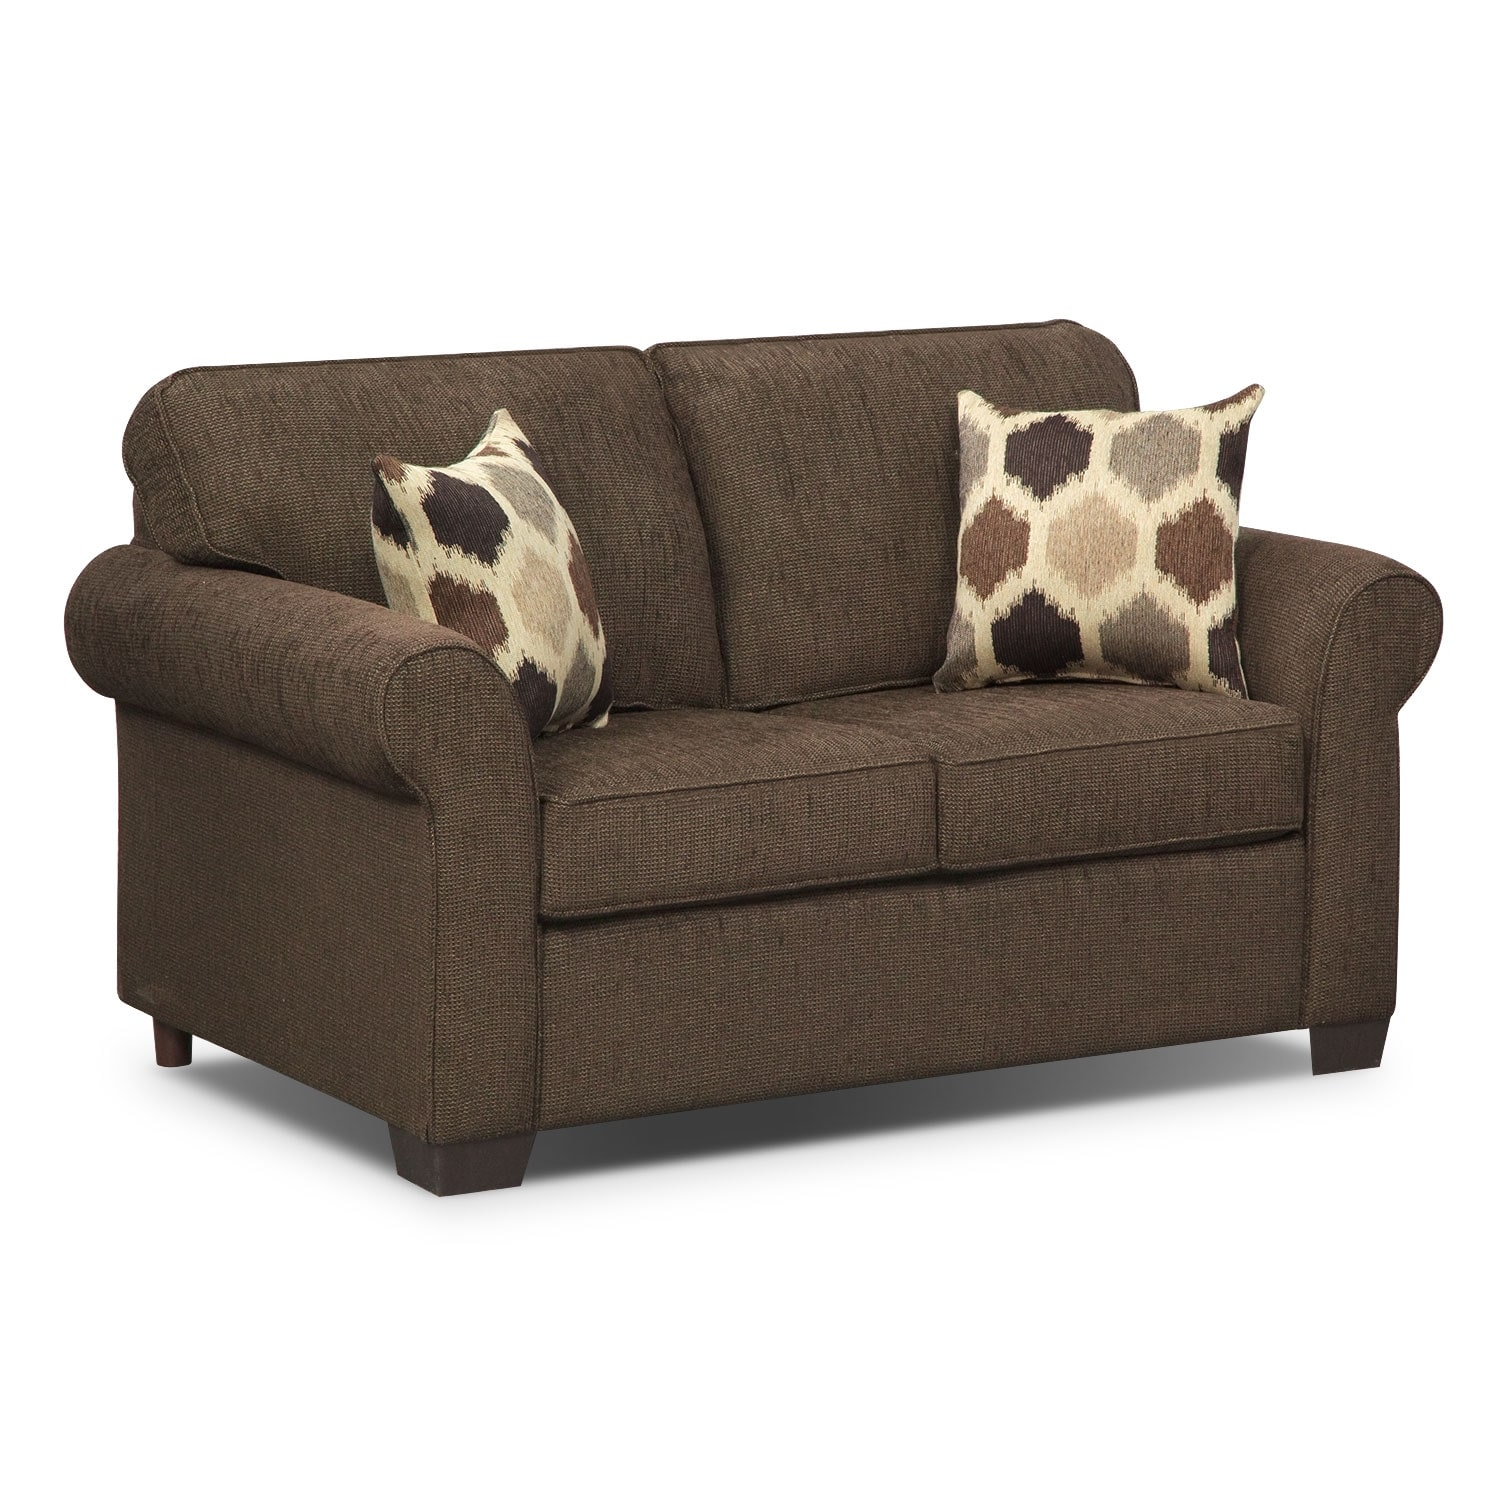 Living Room Furniture - Fletcher II Twin Memory Foam Sleeper Sofa